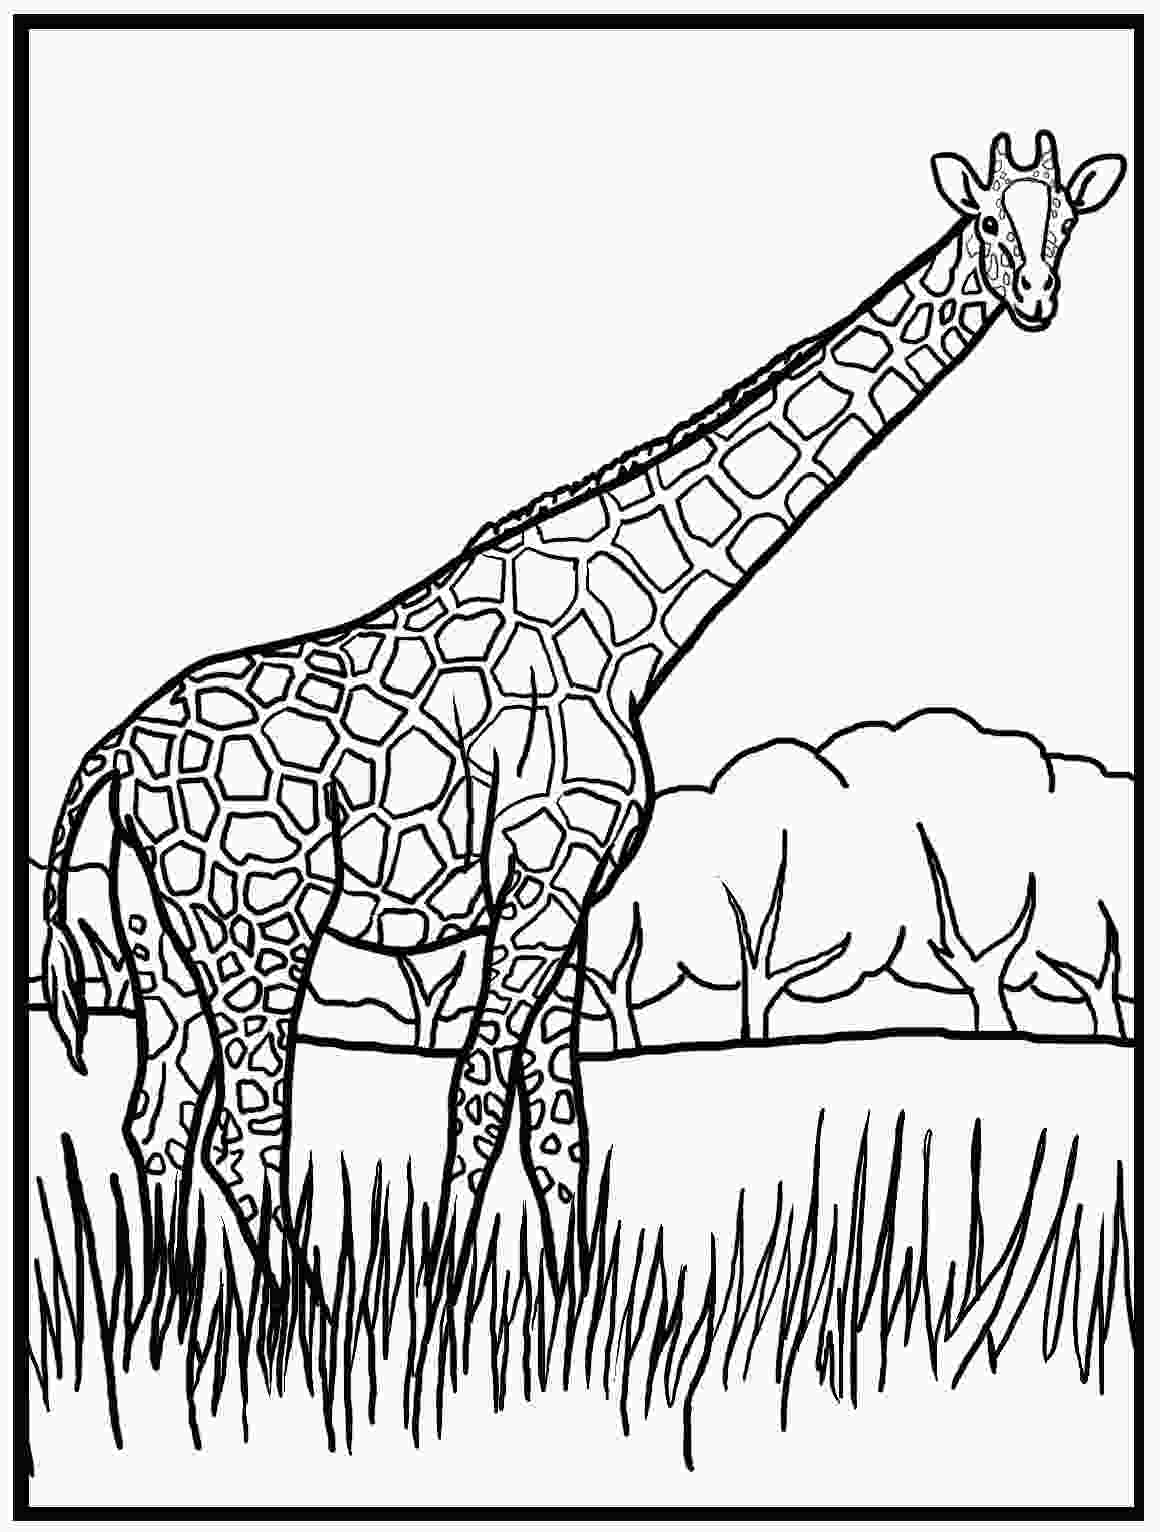 giraffe coloring free printable giraffe coloring pages for kids